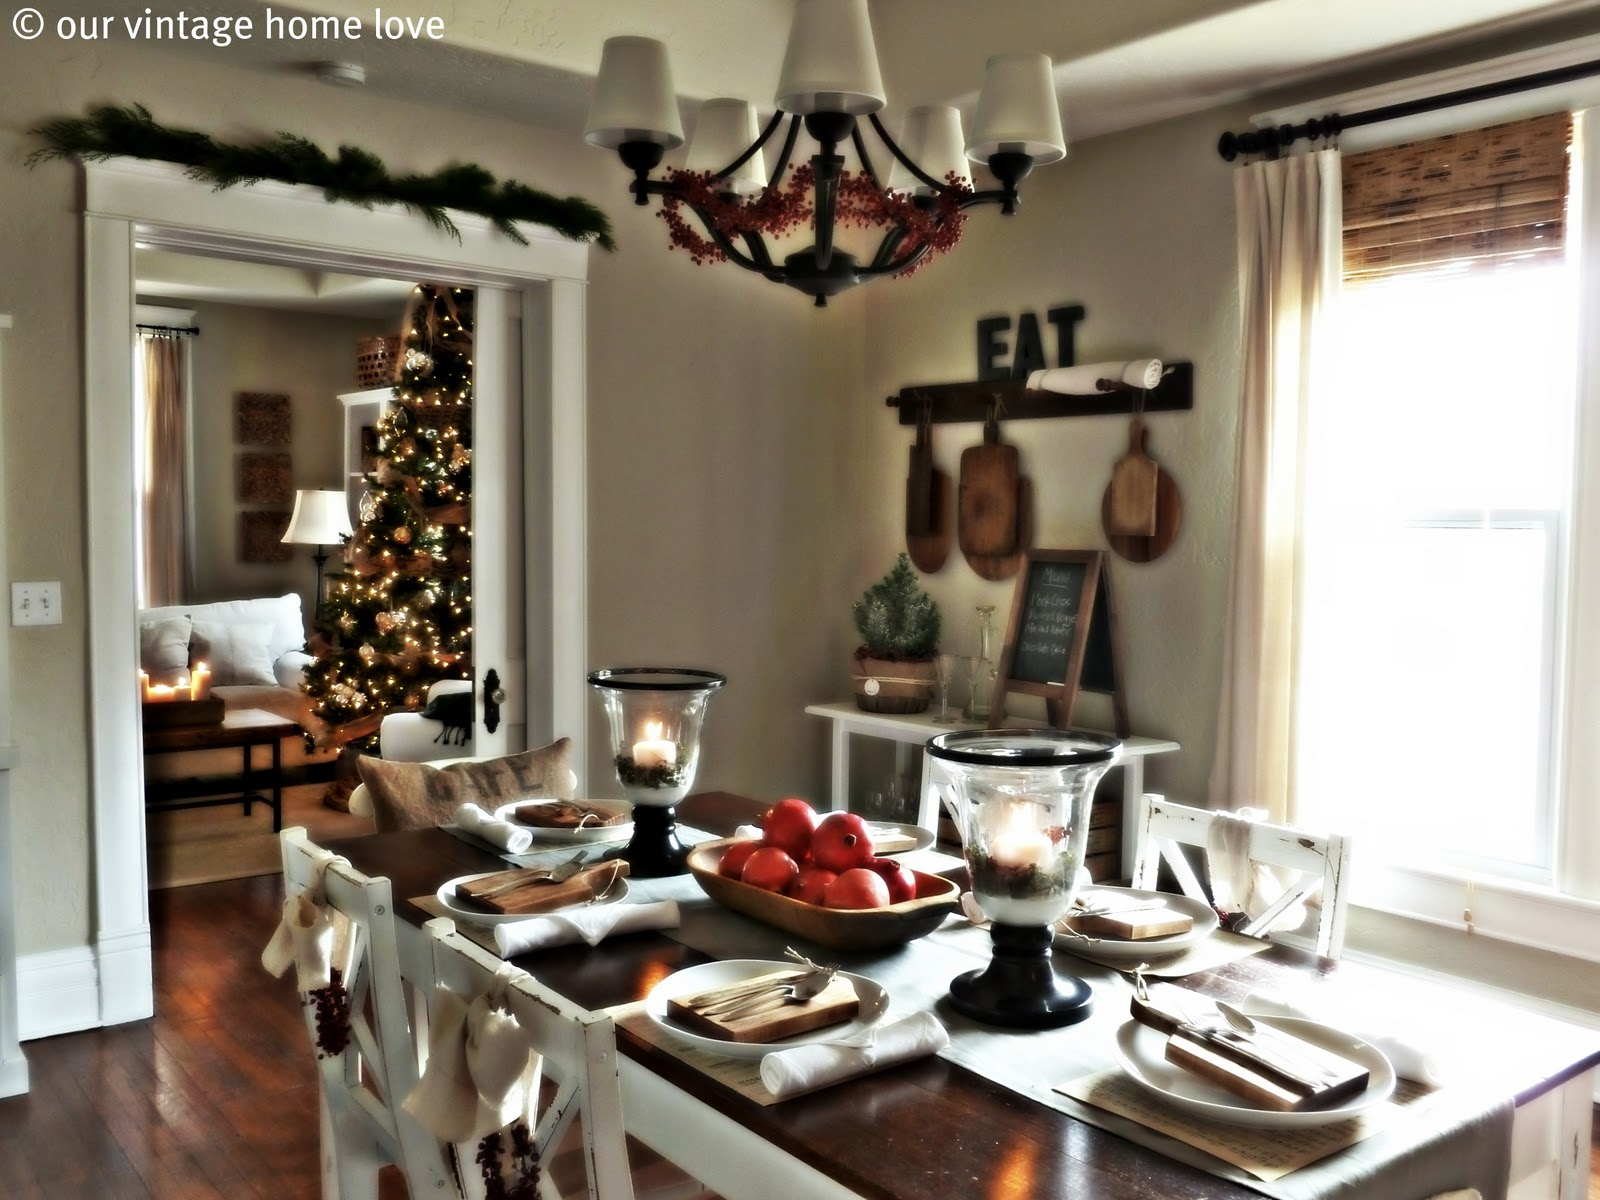 Vintage Home Love Christmas Table Decor Ideas